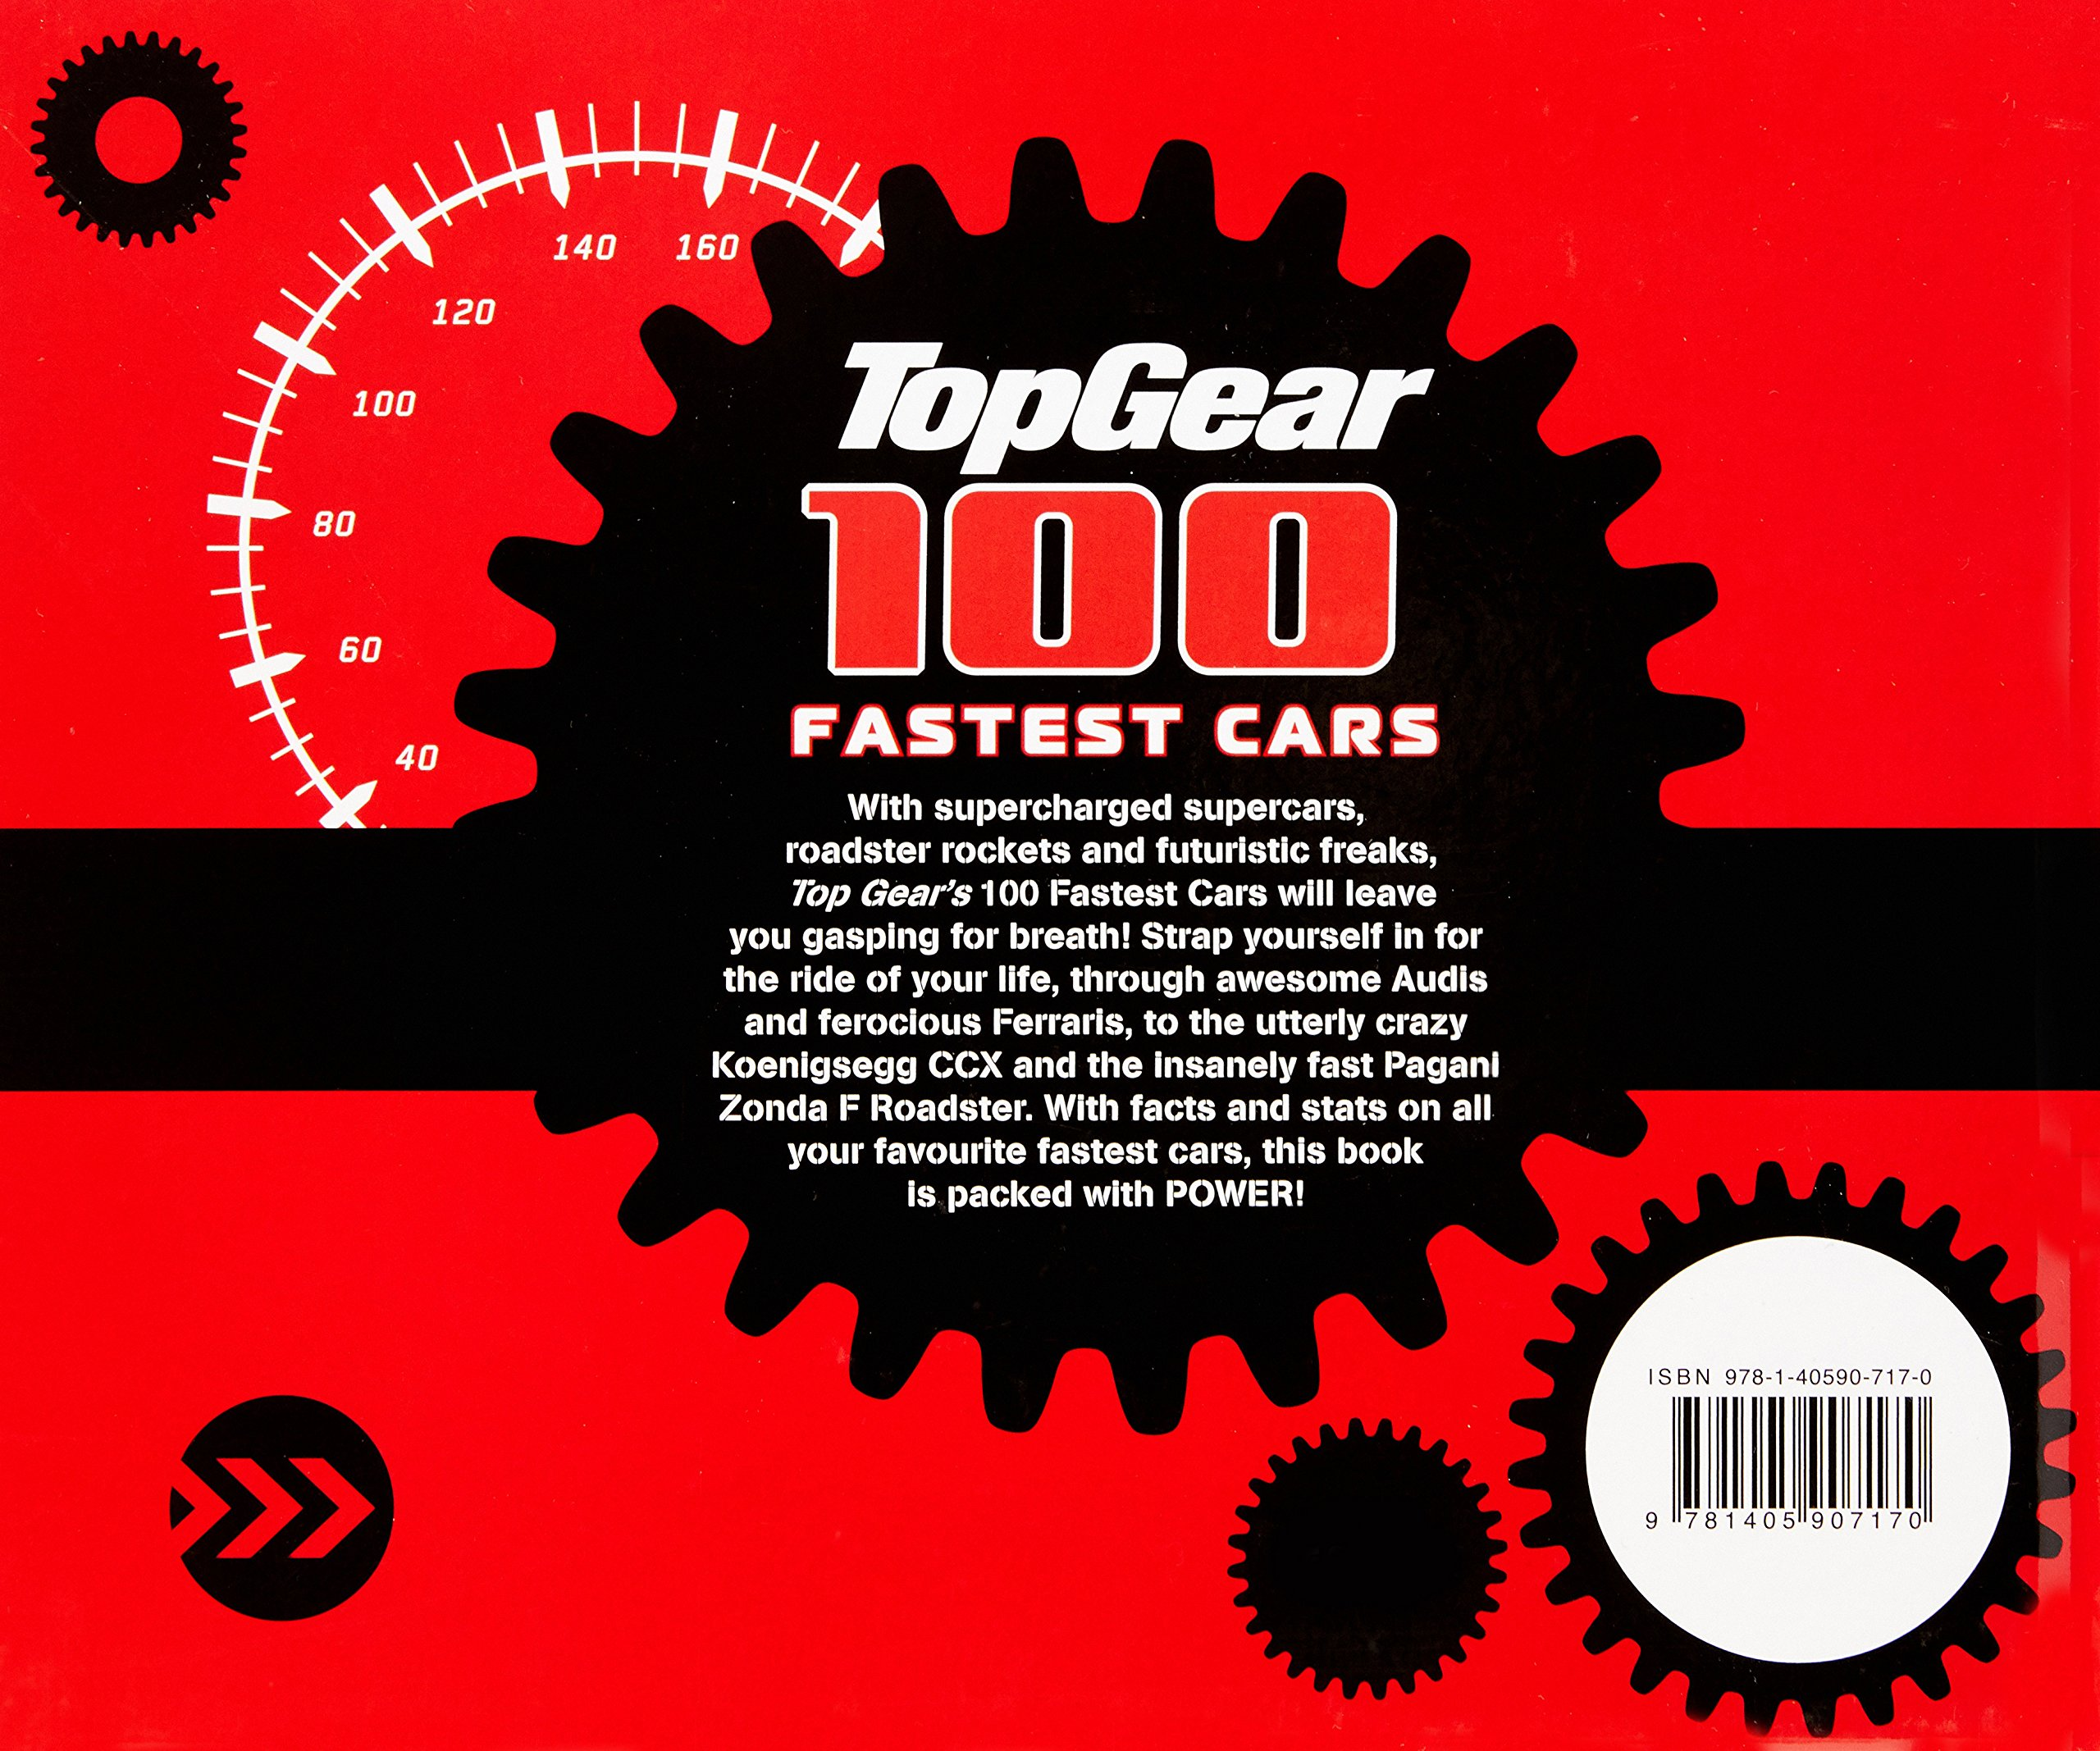 Buy top gear 100 fastest cars book online at low prices in india buy top gear 100 fastest cars book online at low prices in india top gear 100 fastest cars reviews ratings amazon fandeluxe Images